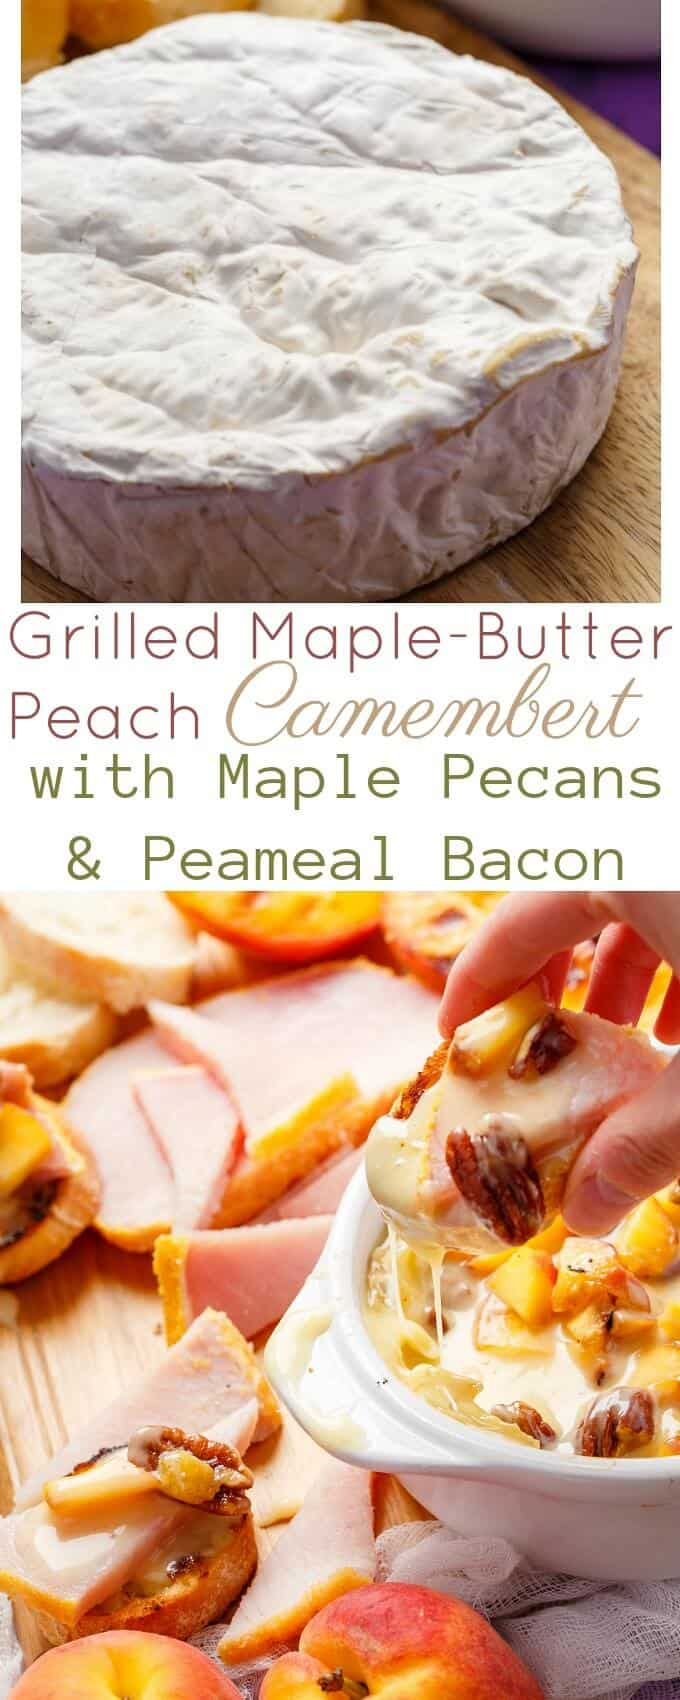 Grilled Maple-Butter Peach Camembert with Maple Pecans & Peameal Bacon